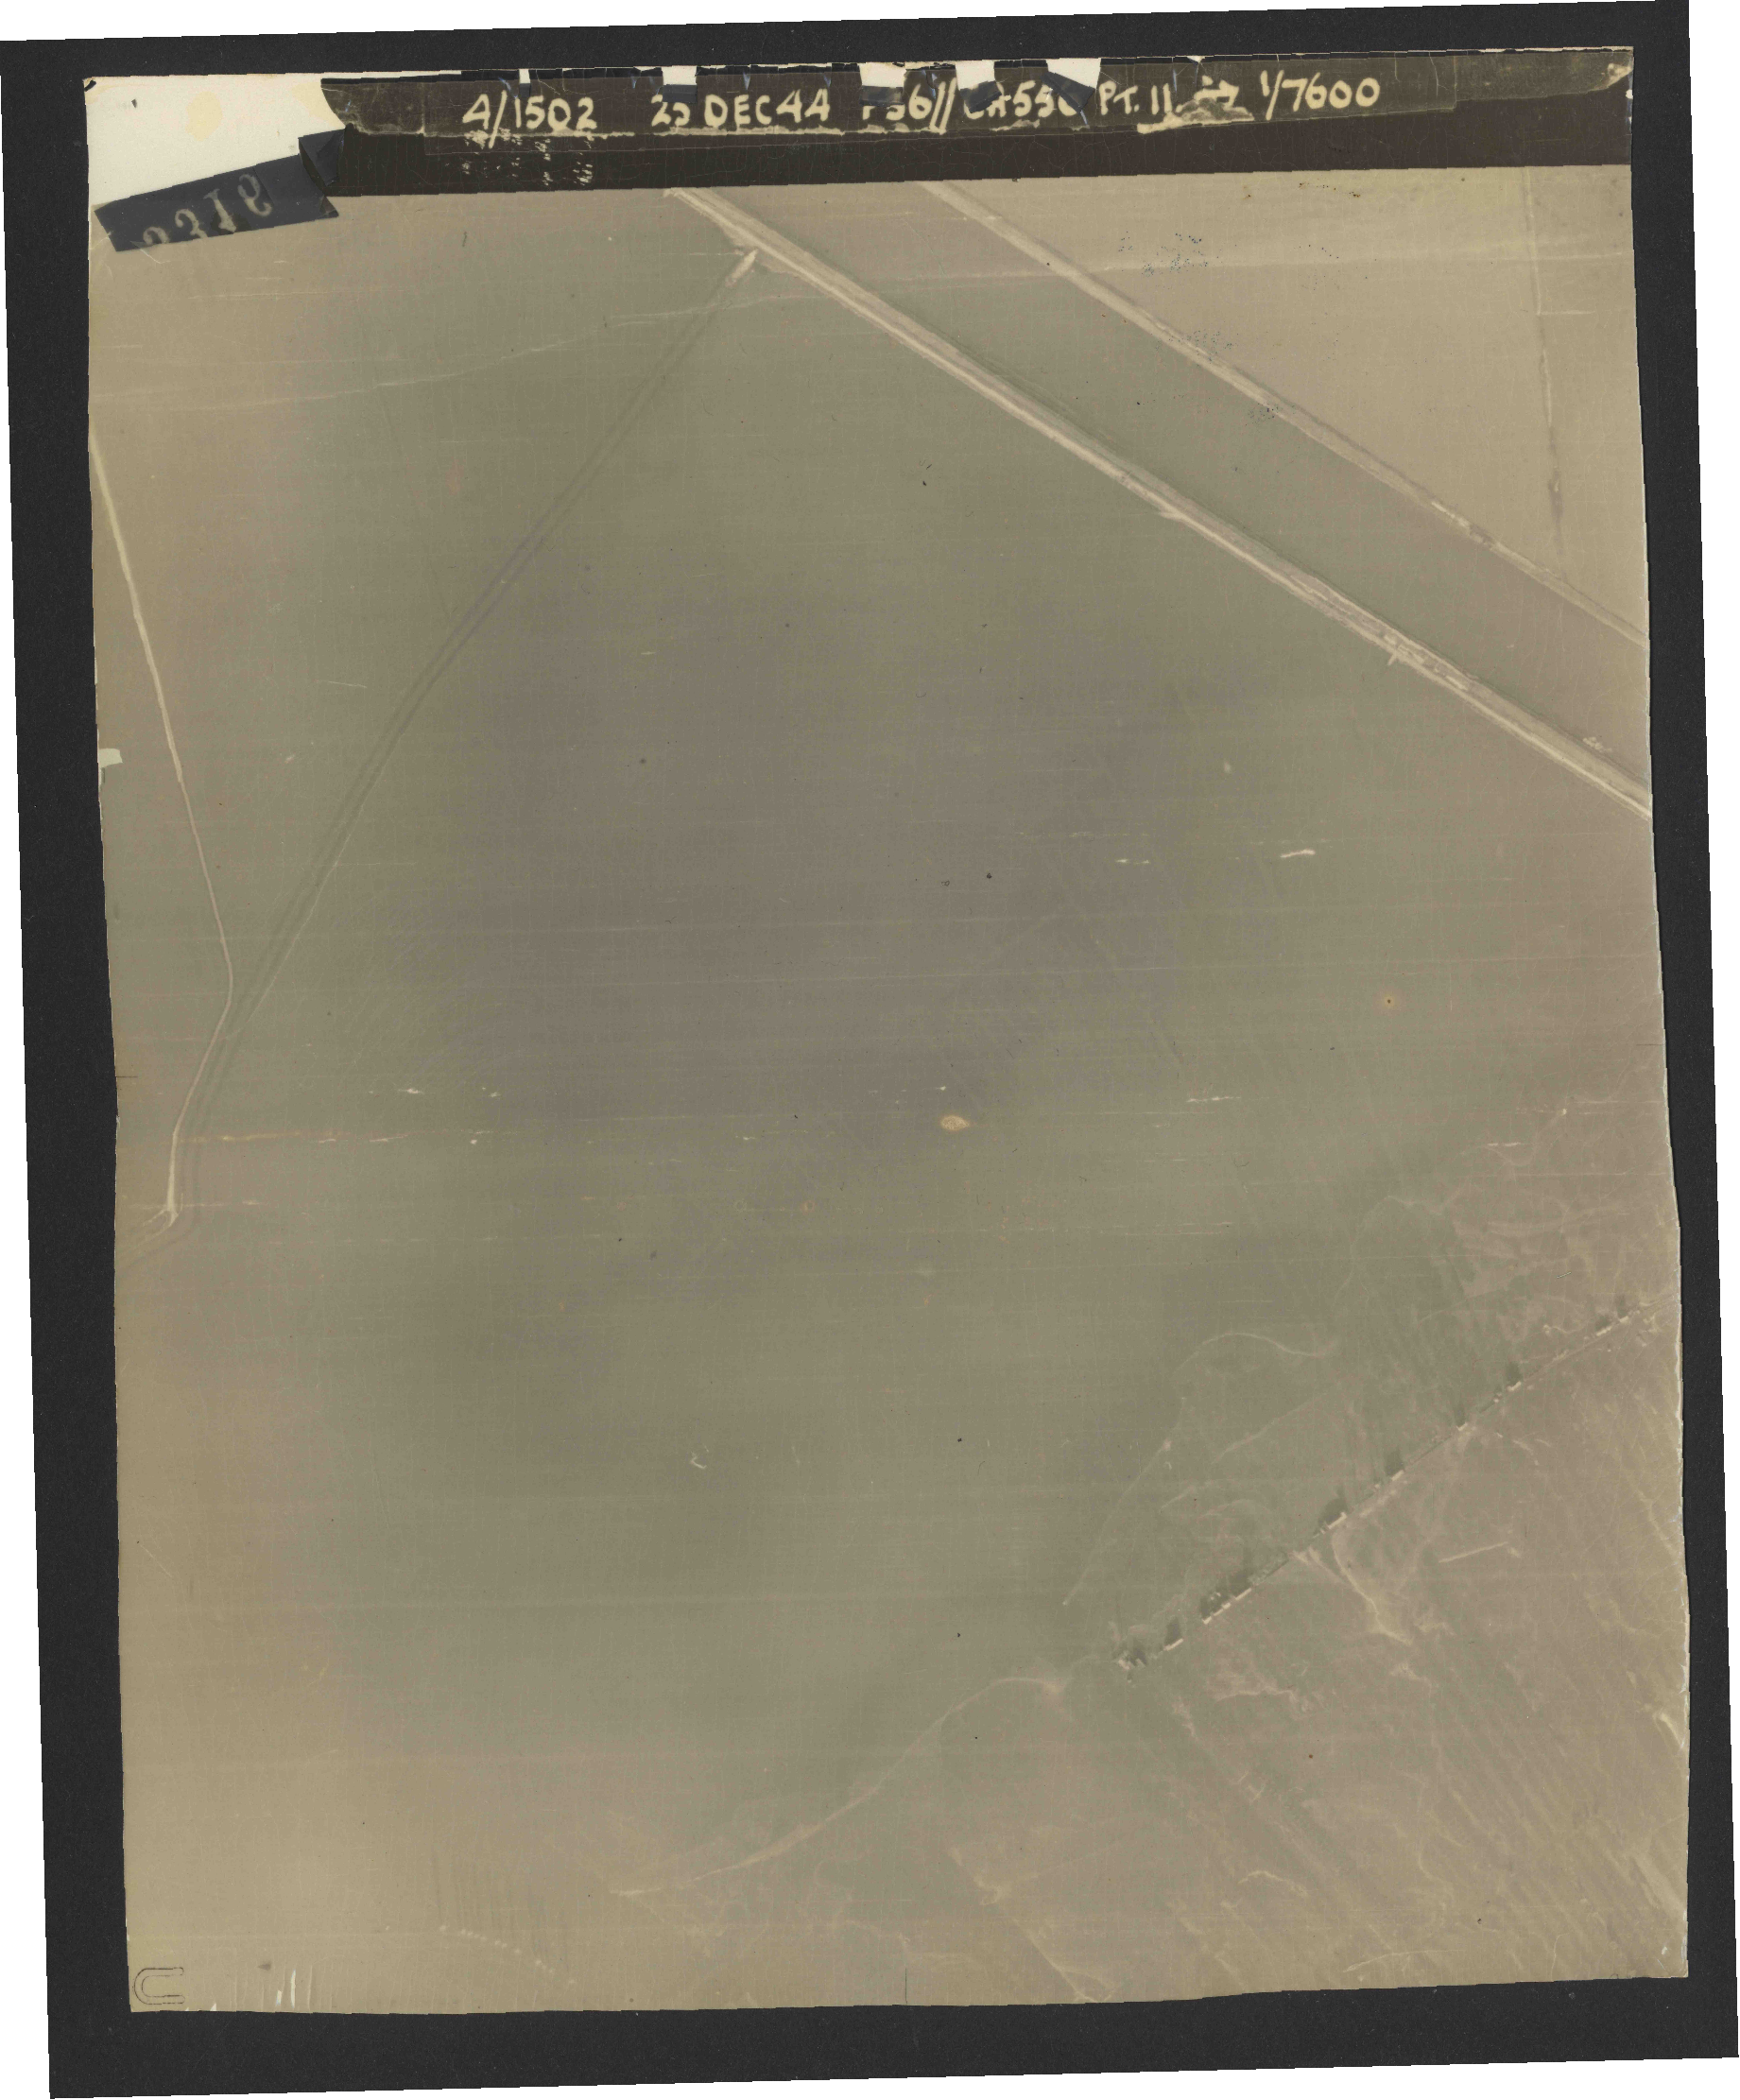 Collection RAF aerial photos 1940-1945 - flight 306, run 10, photo 3316